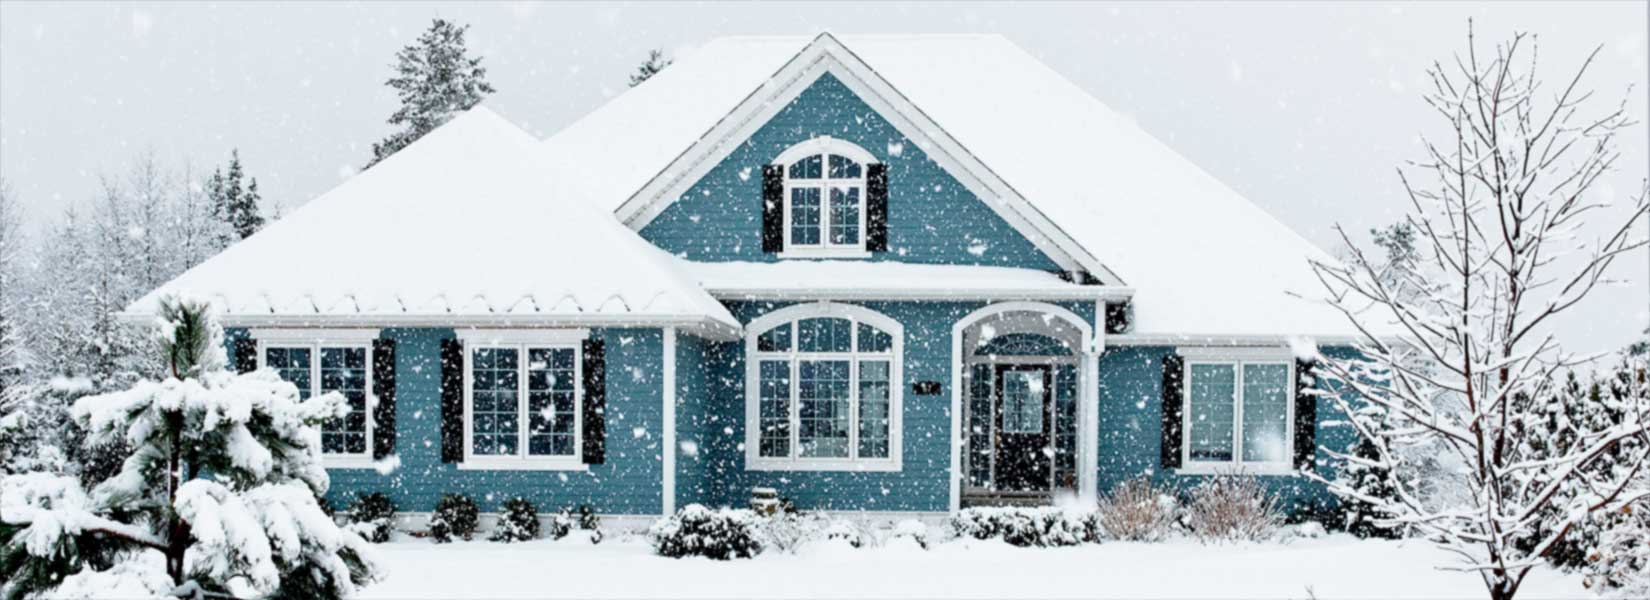 7 Tips To Prepare Your HVAC For A Snowstorm